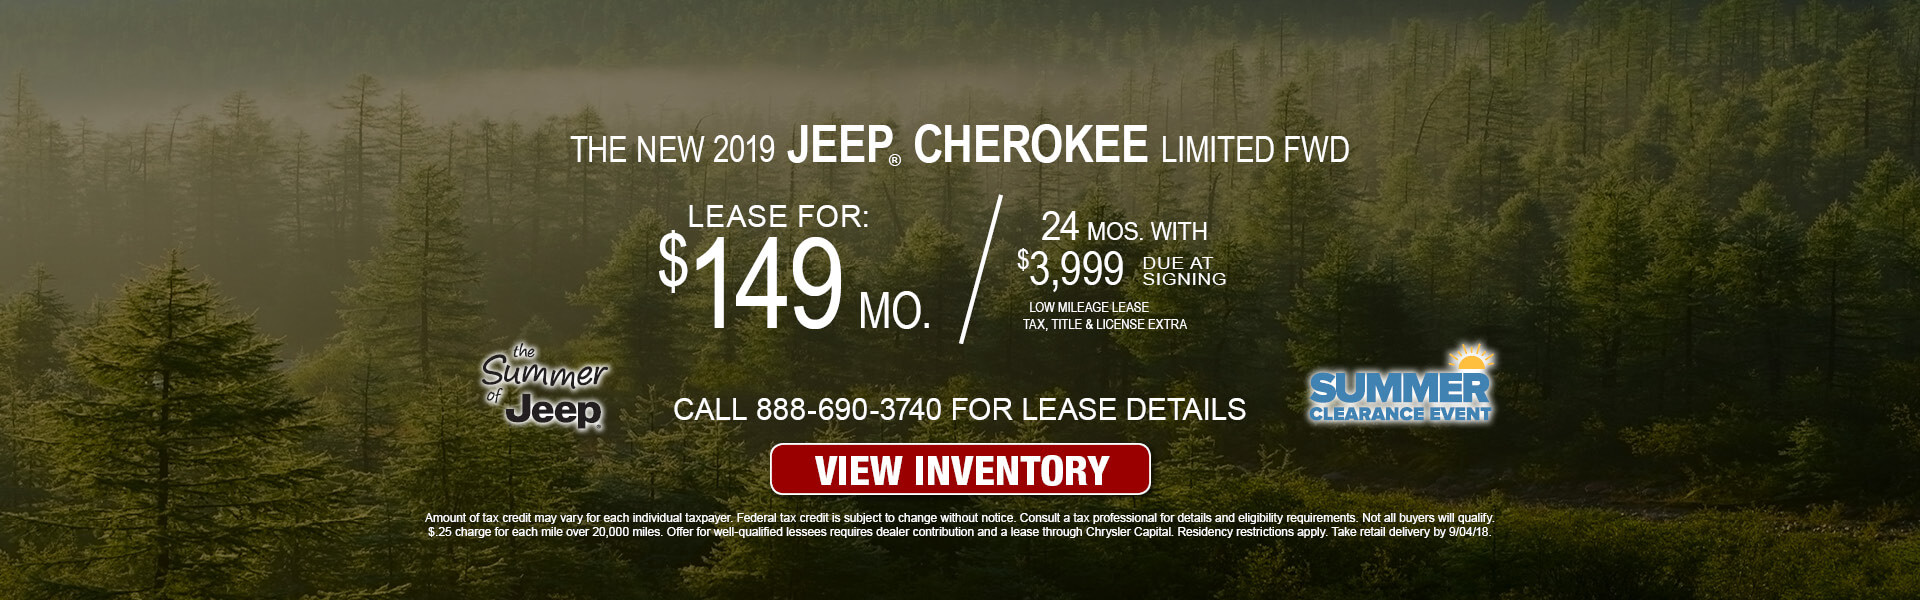 Jeep Cherokee Limited $149 Lease